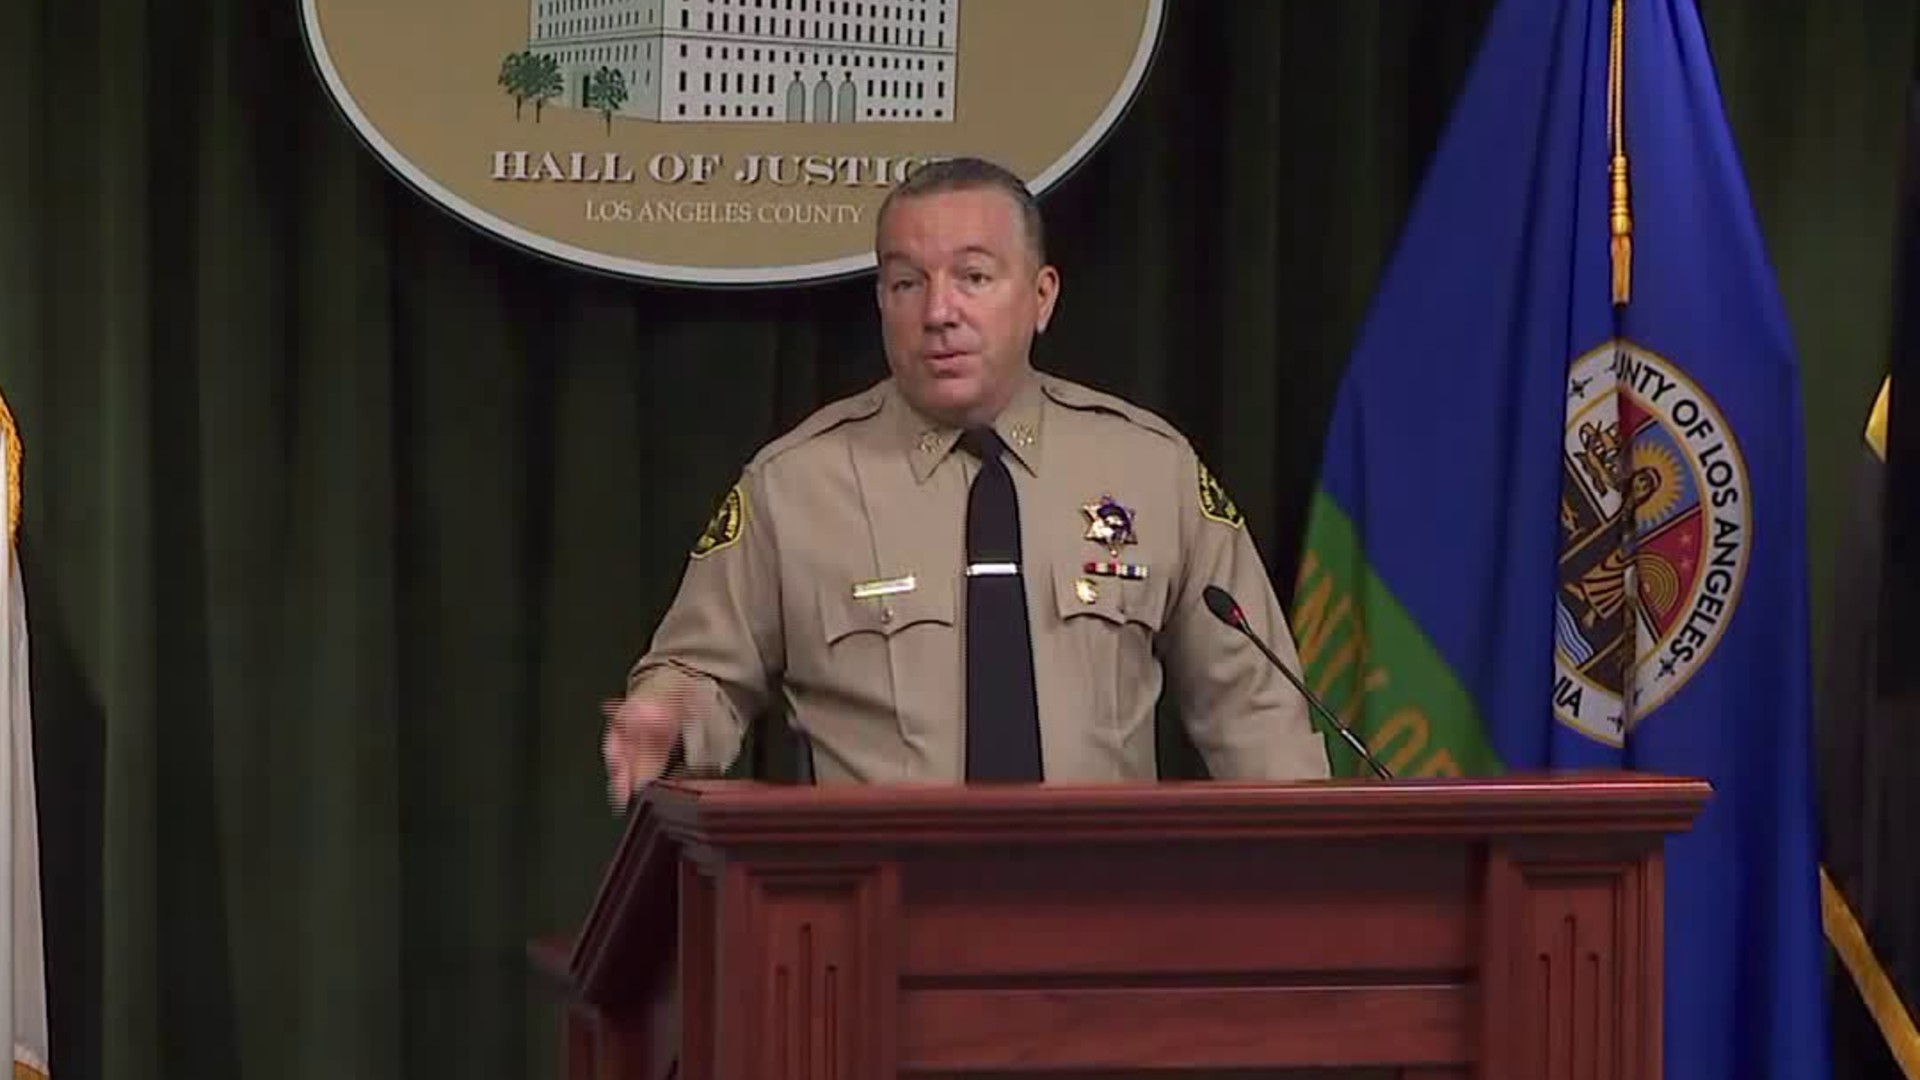 L.A. County Sheriff Alex Villanueva speaks at a news conference on Aug. 12, 2020. (KTLA)